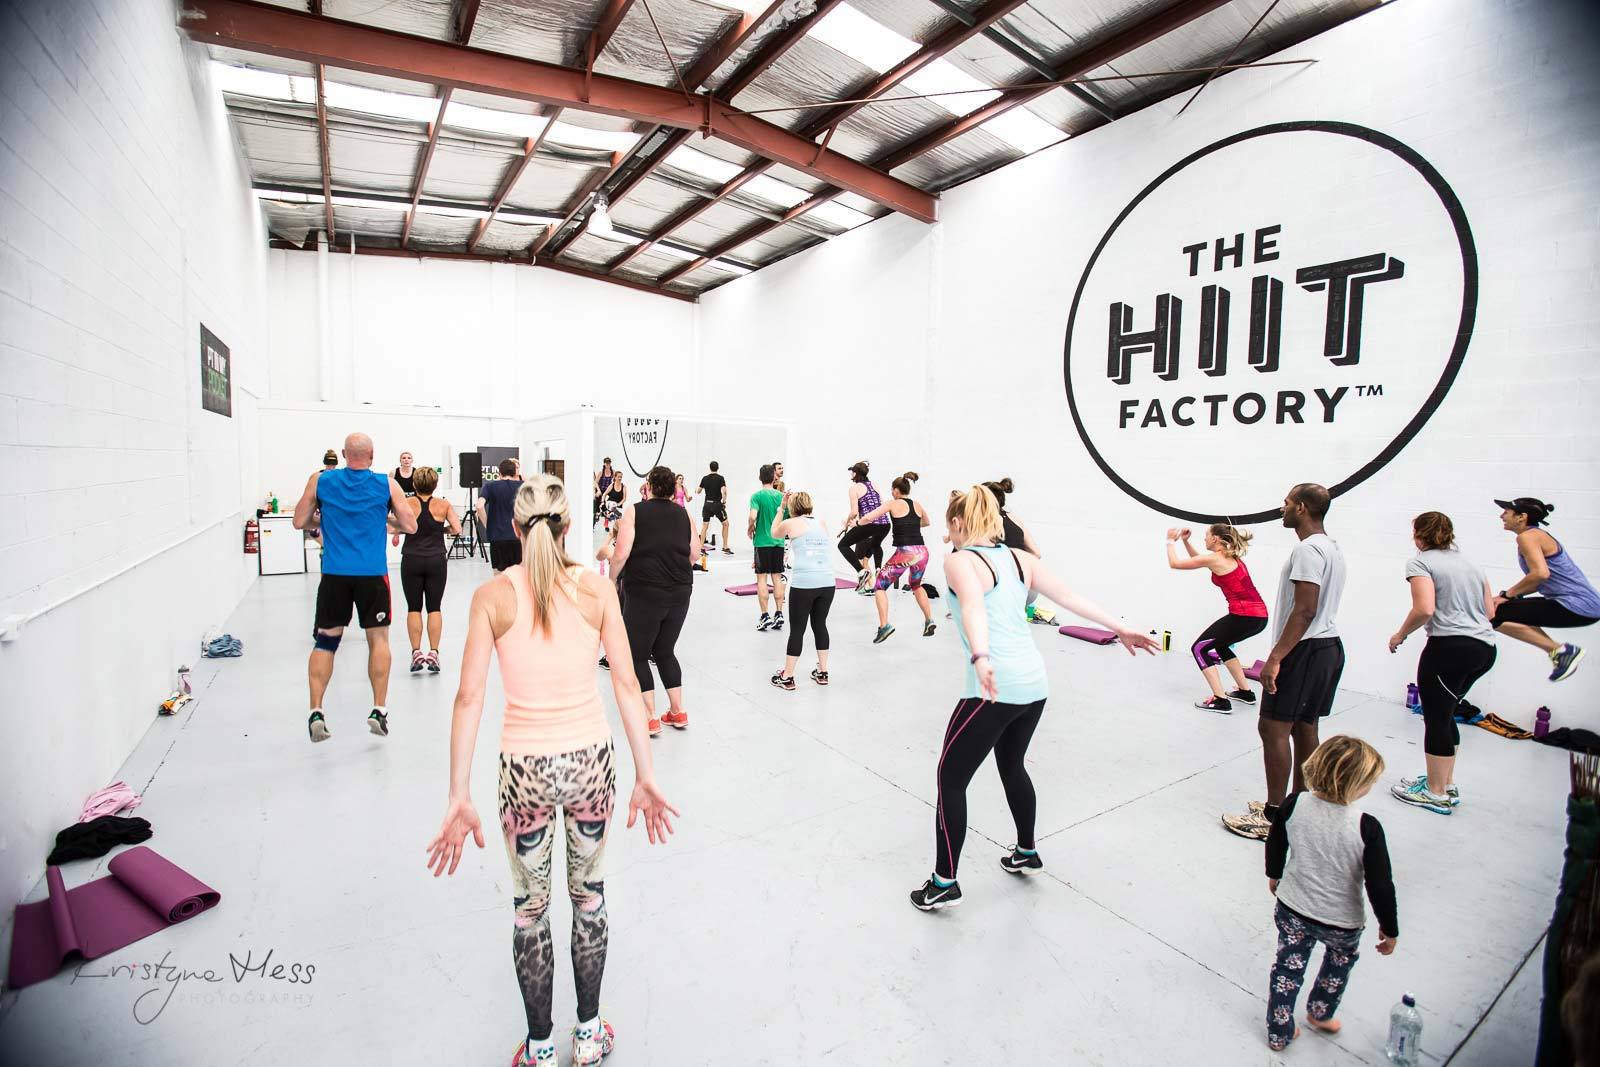 The HIIT factory melbourne